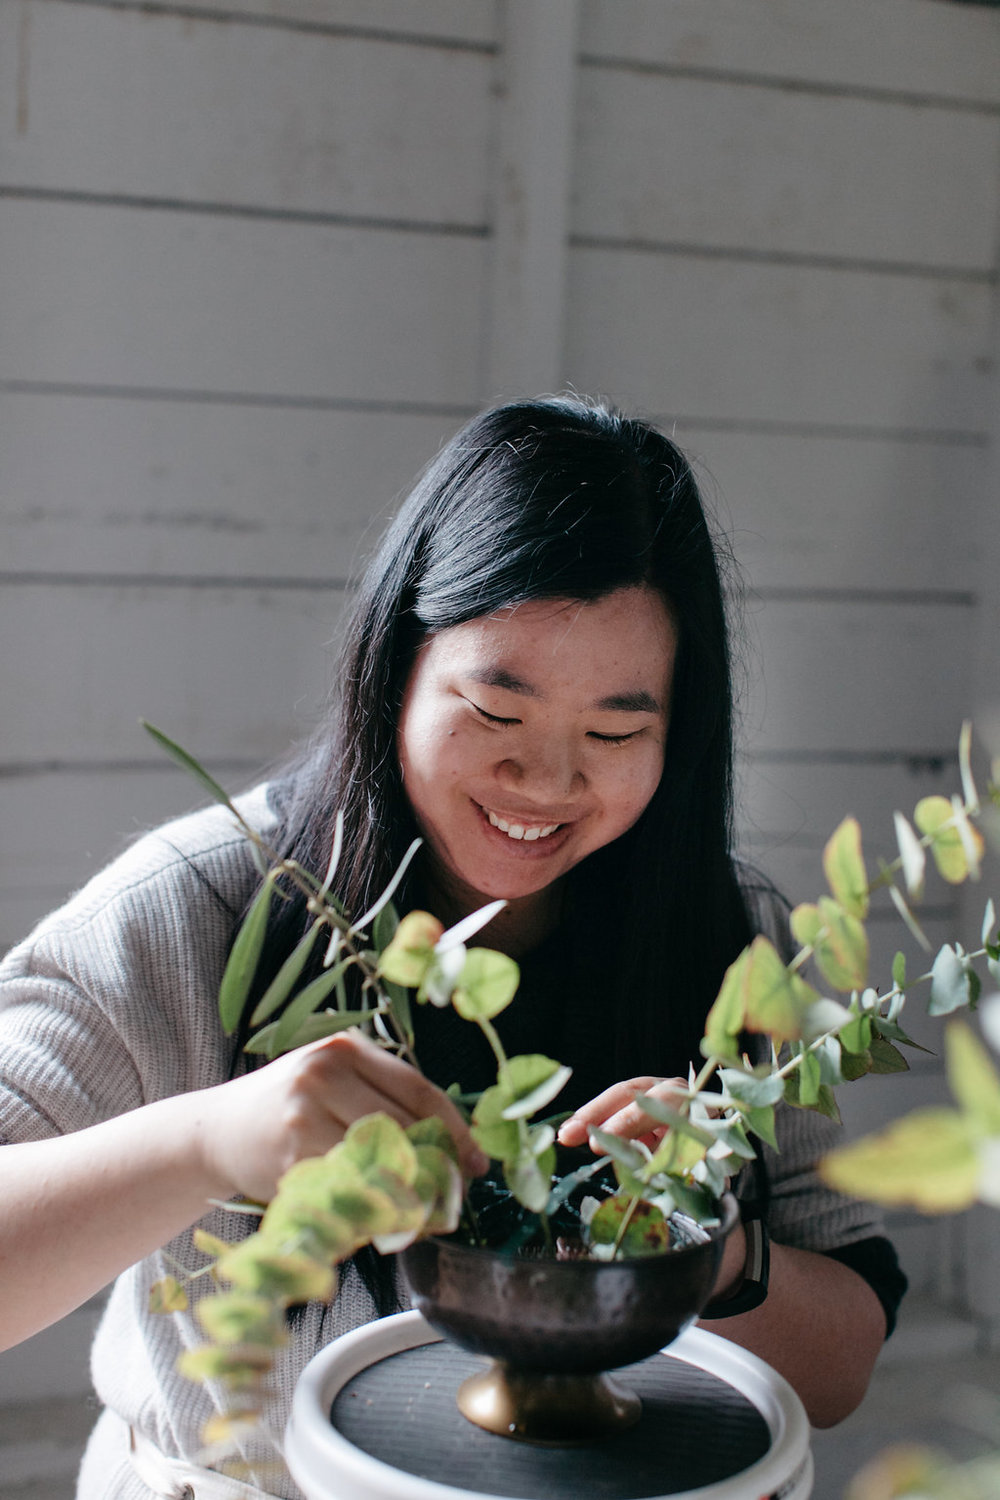 Girl smiling while arranging flowers